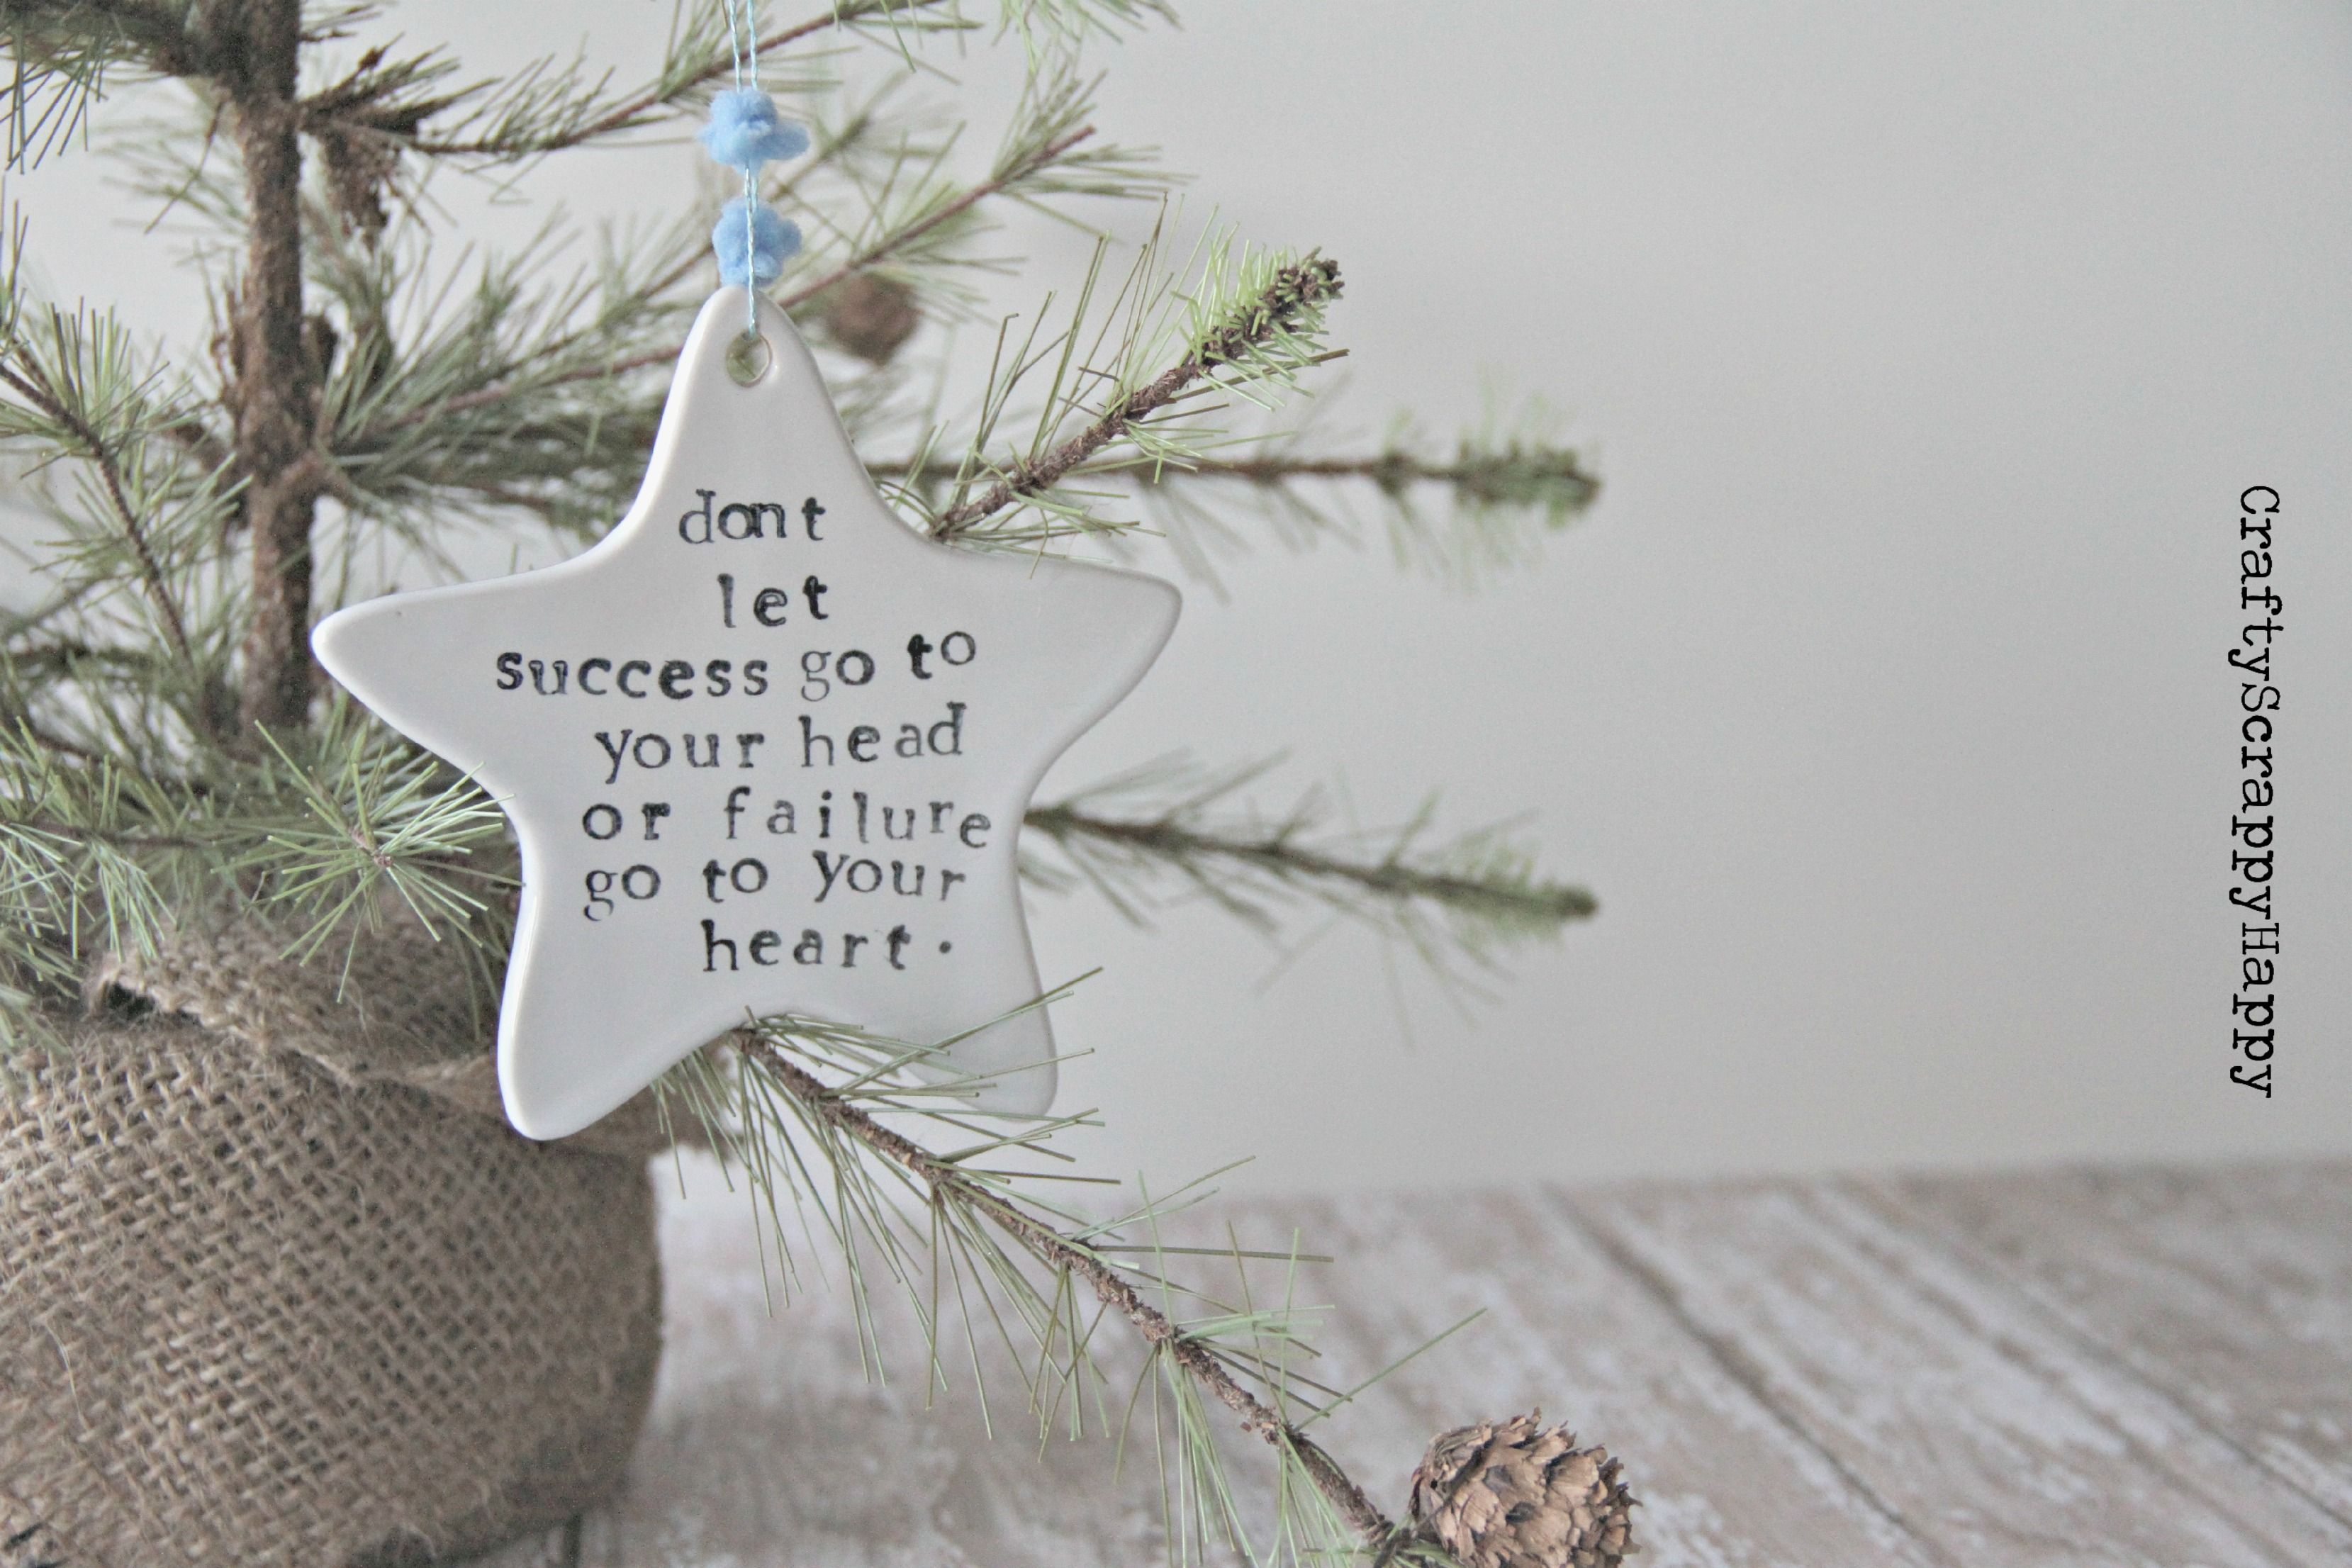 Diy Quote Ornaments For Friends Diy Xmas Gifts Christmas Ornaments Homemade Easy Christmas Decorations